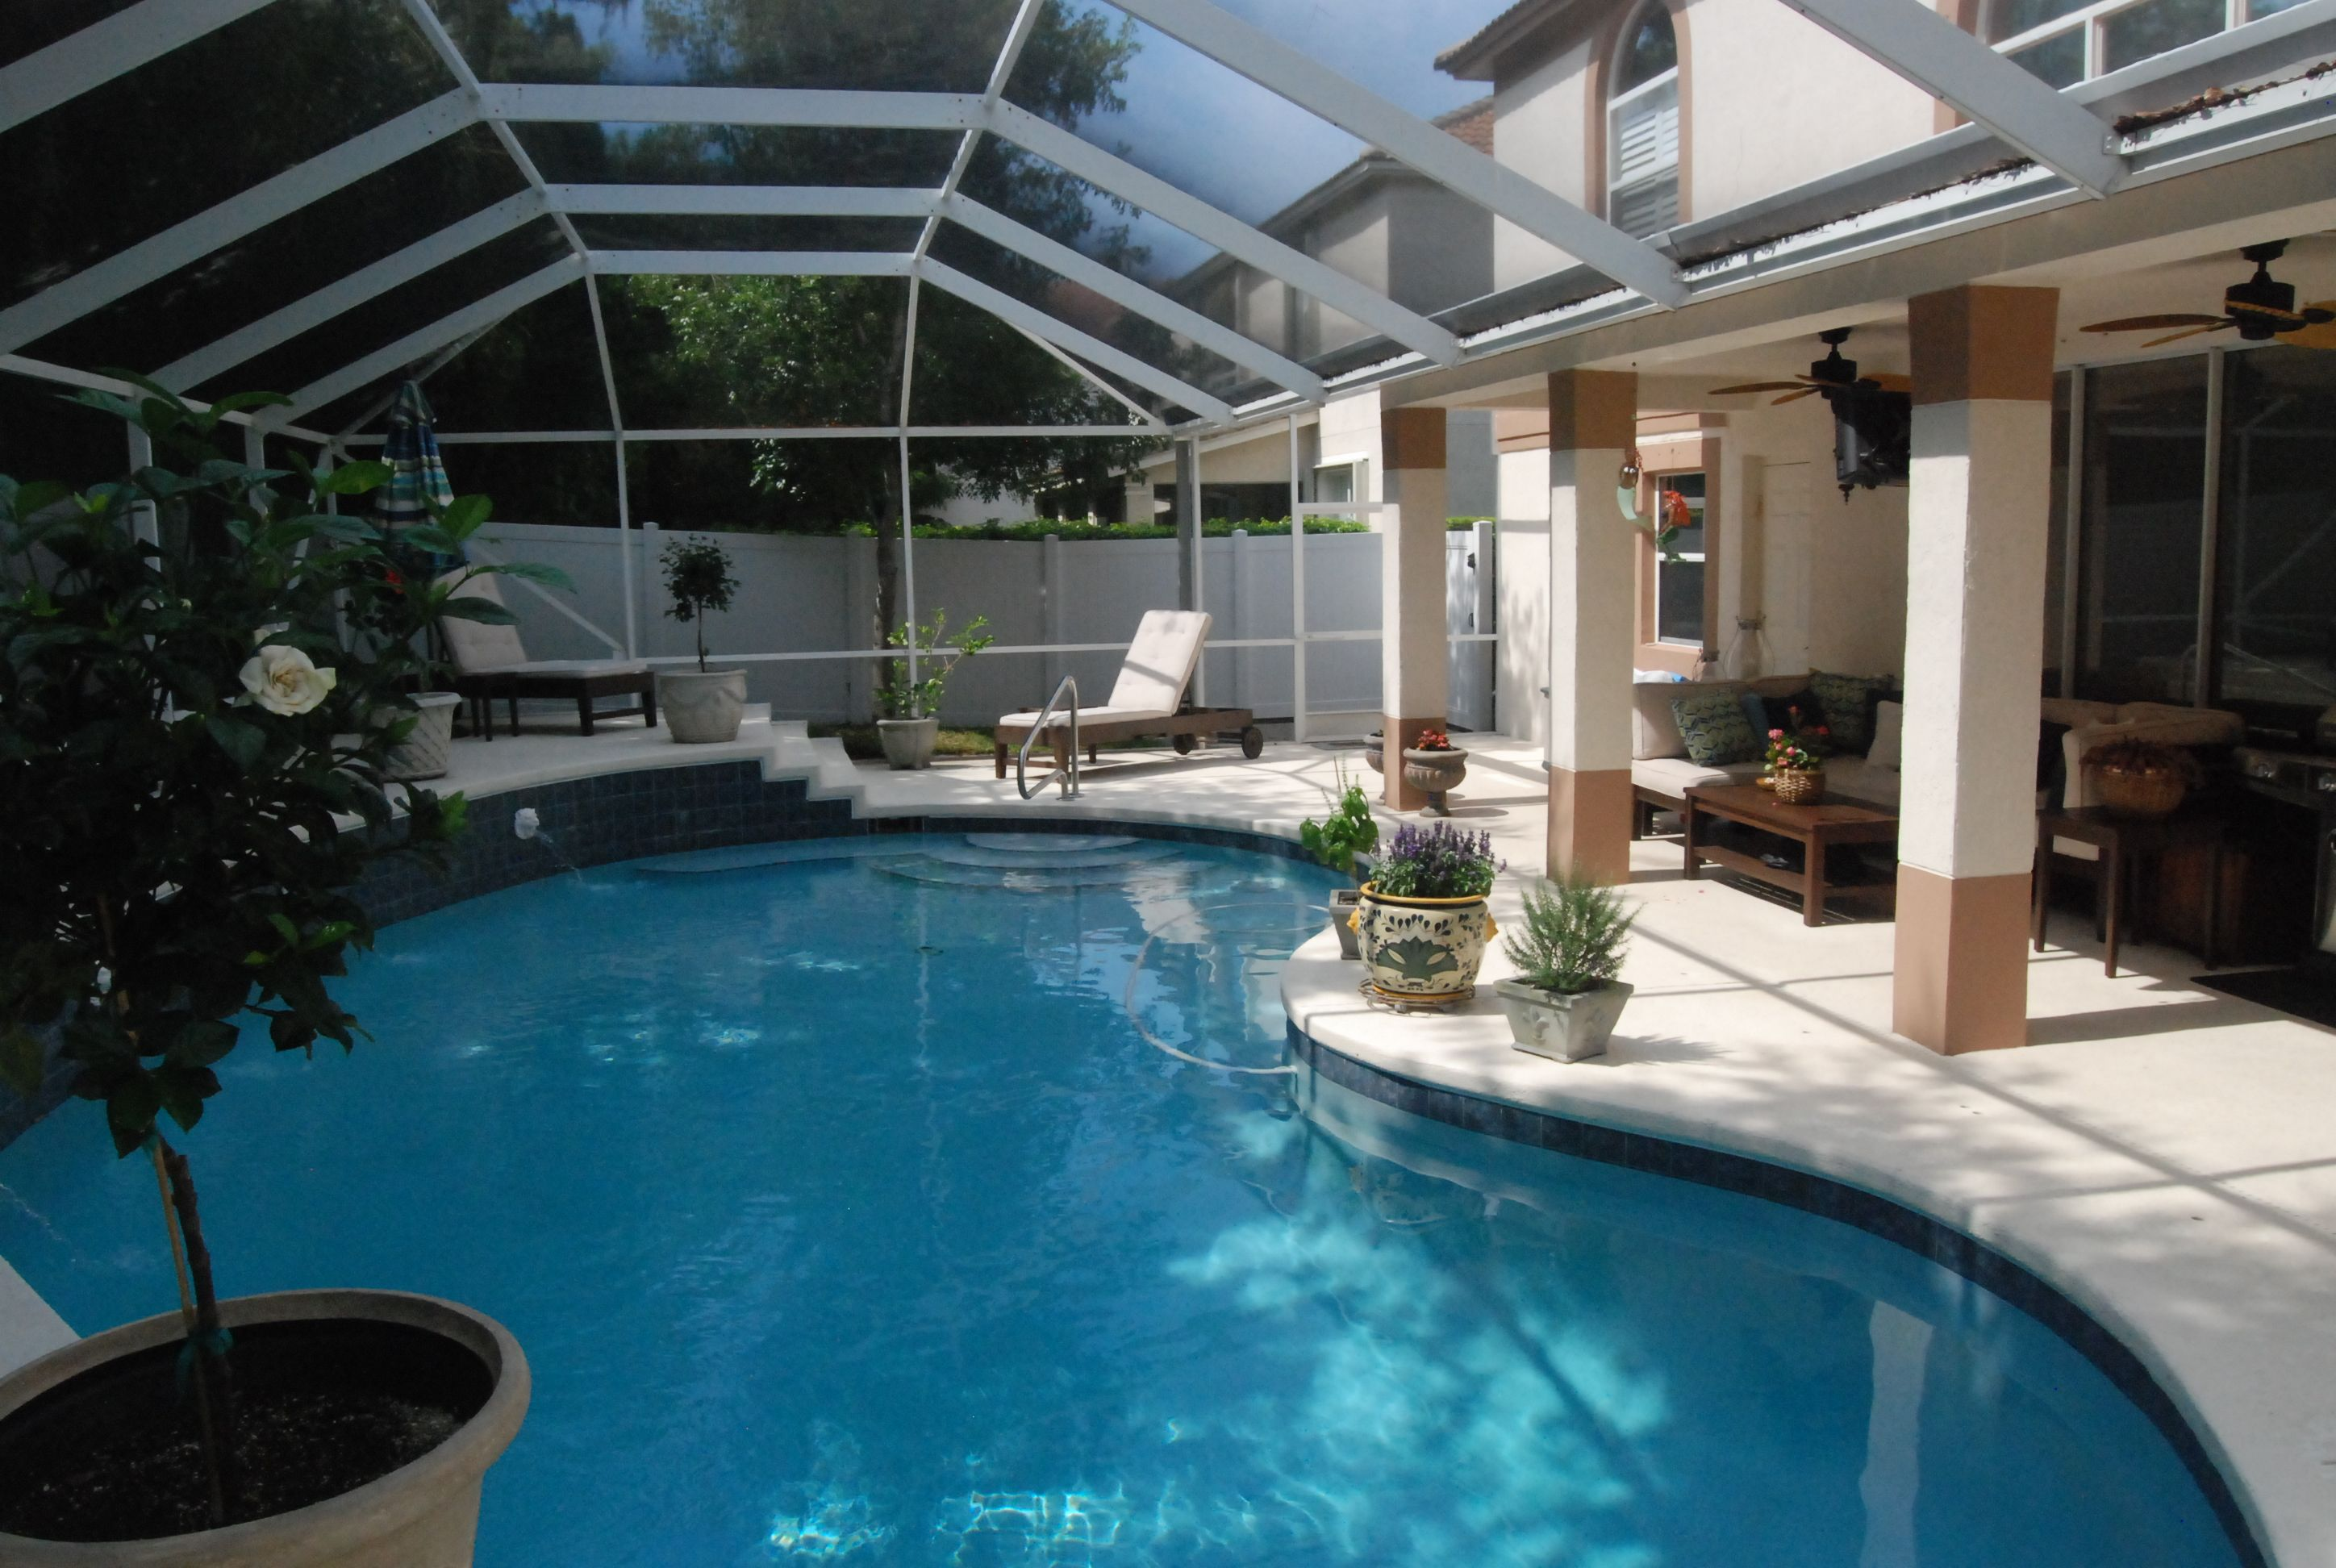 Indoor outdoor pool home pinterest for Indoor garden pool